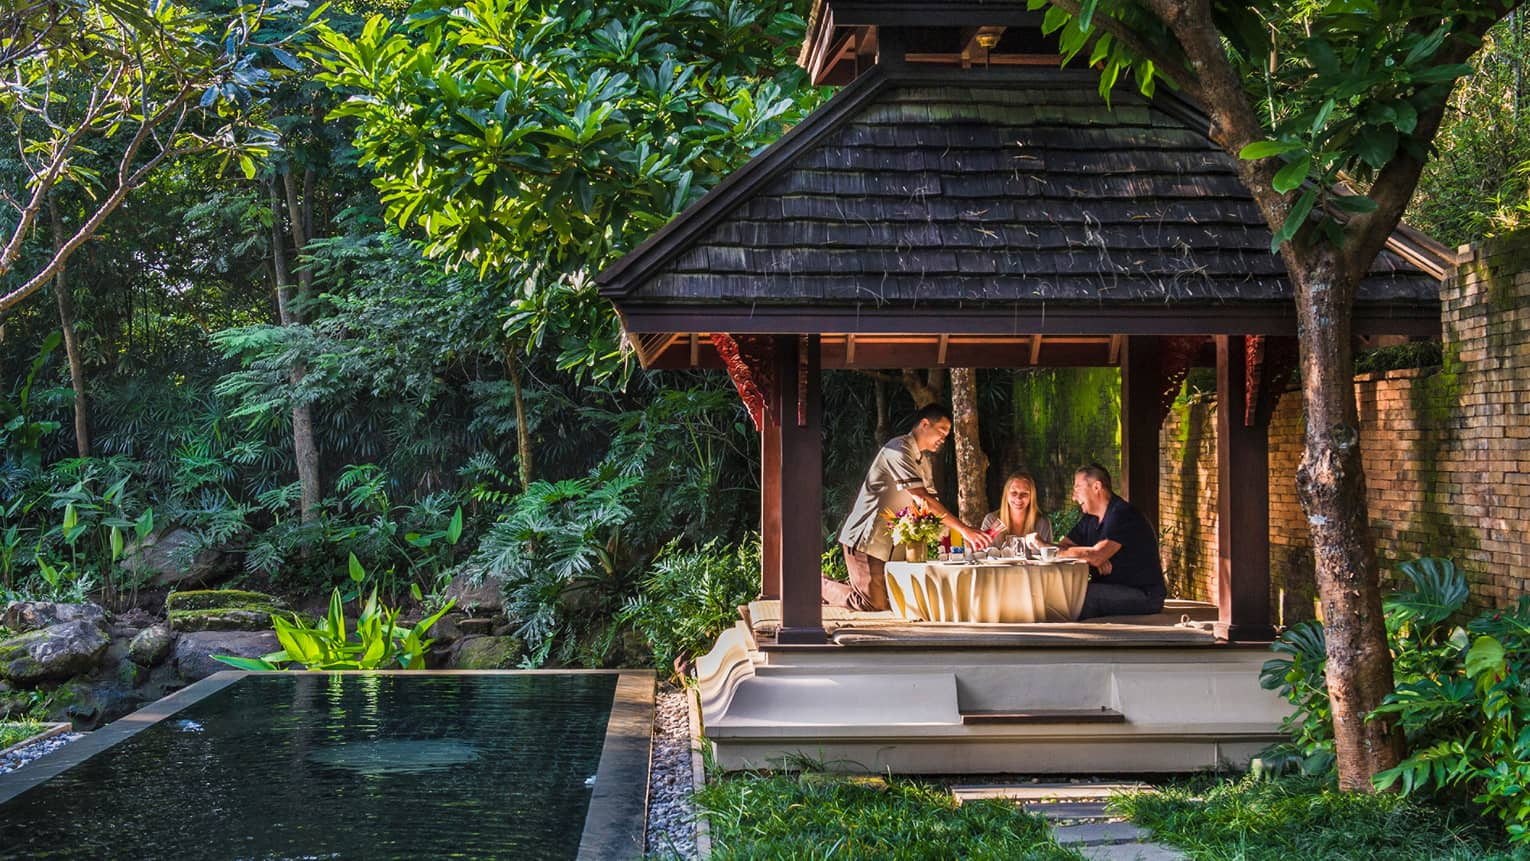 Hotel staff pours fresh juice for couple at private patio dining table under wood gazebo